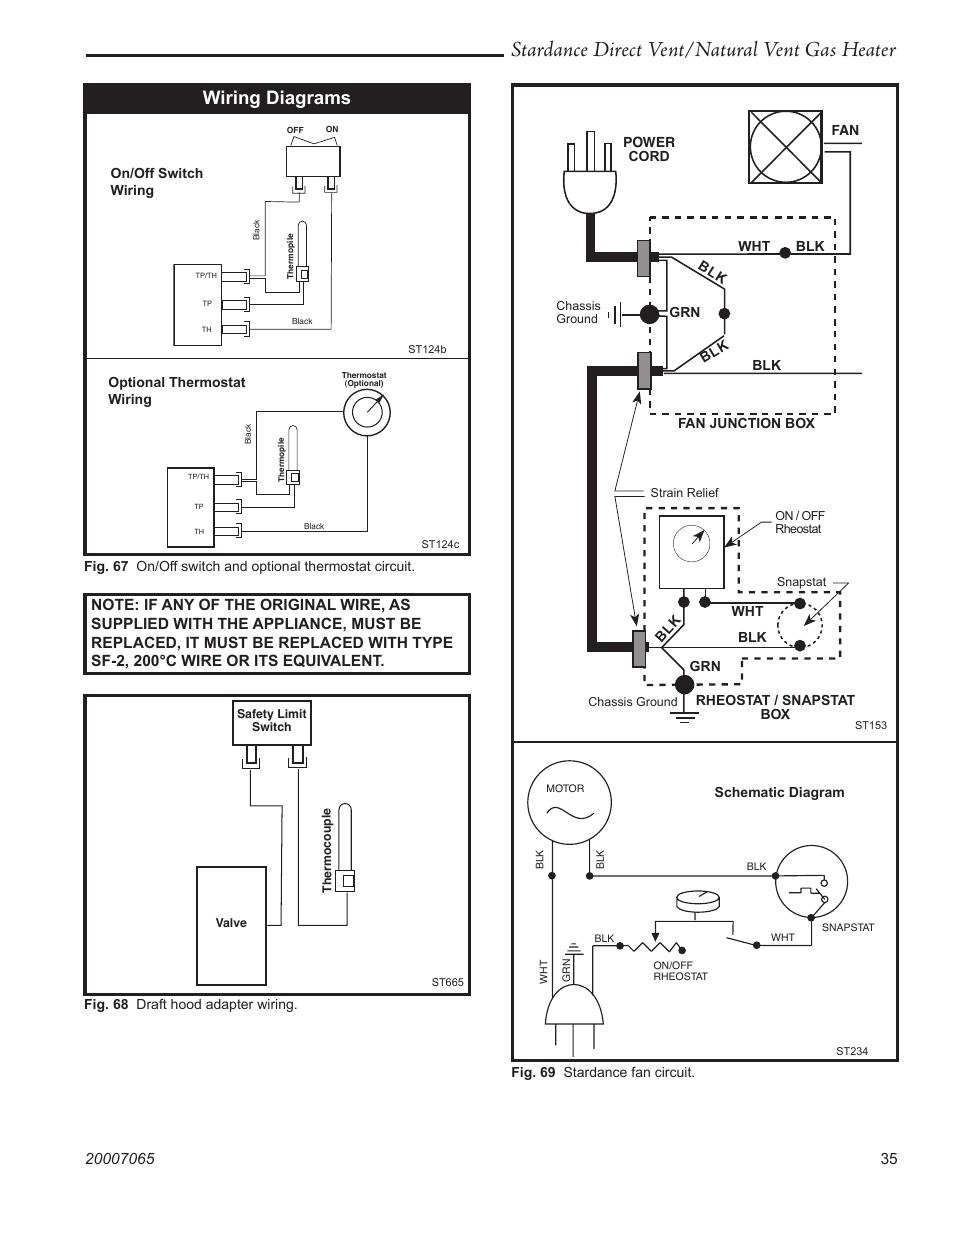 Stardance Direct Vent Natural Gas Heater Wiring Diagrams Rheostat Diagram Vermont Casting Sdv30 User Manual Page 35 44